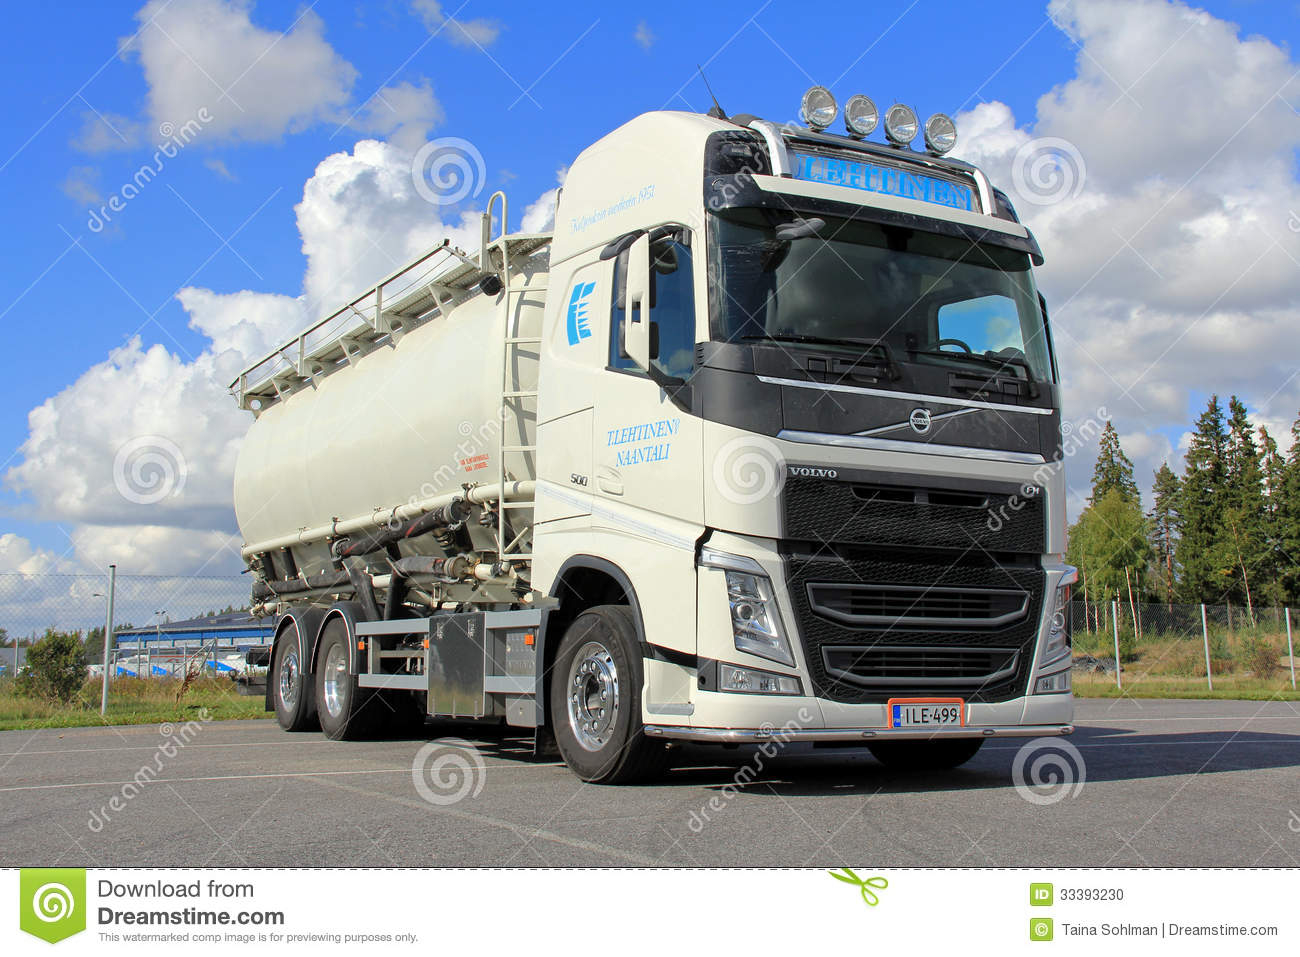 Volvo Tank Truck For Food Transport Editorial Image - Image: 33393230